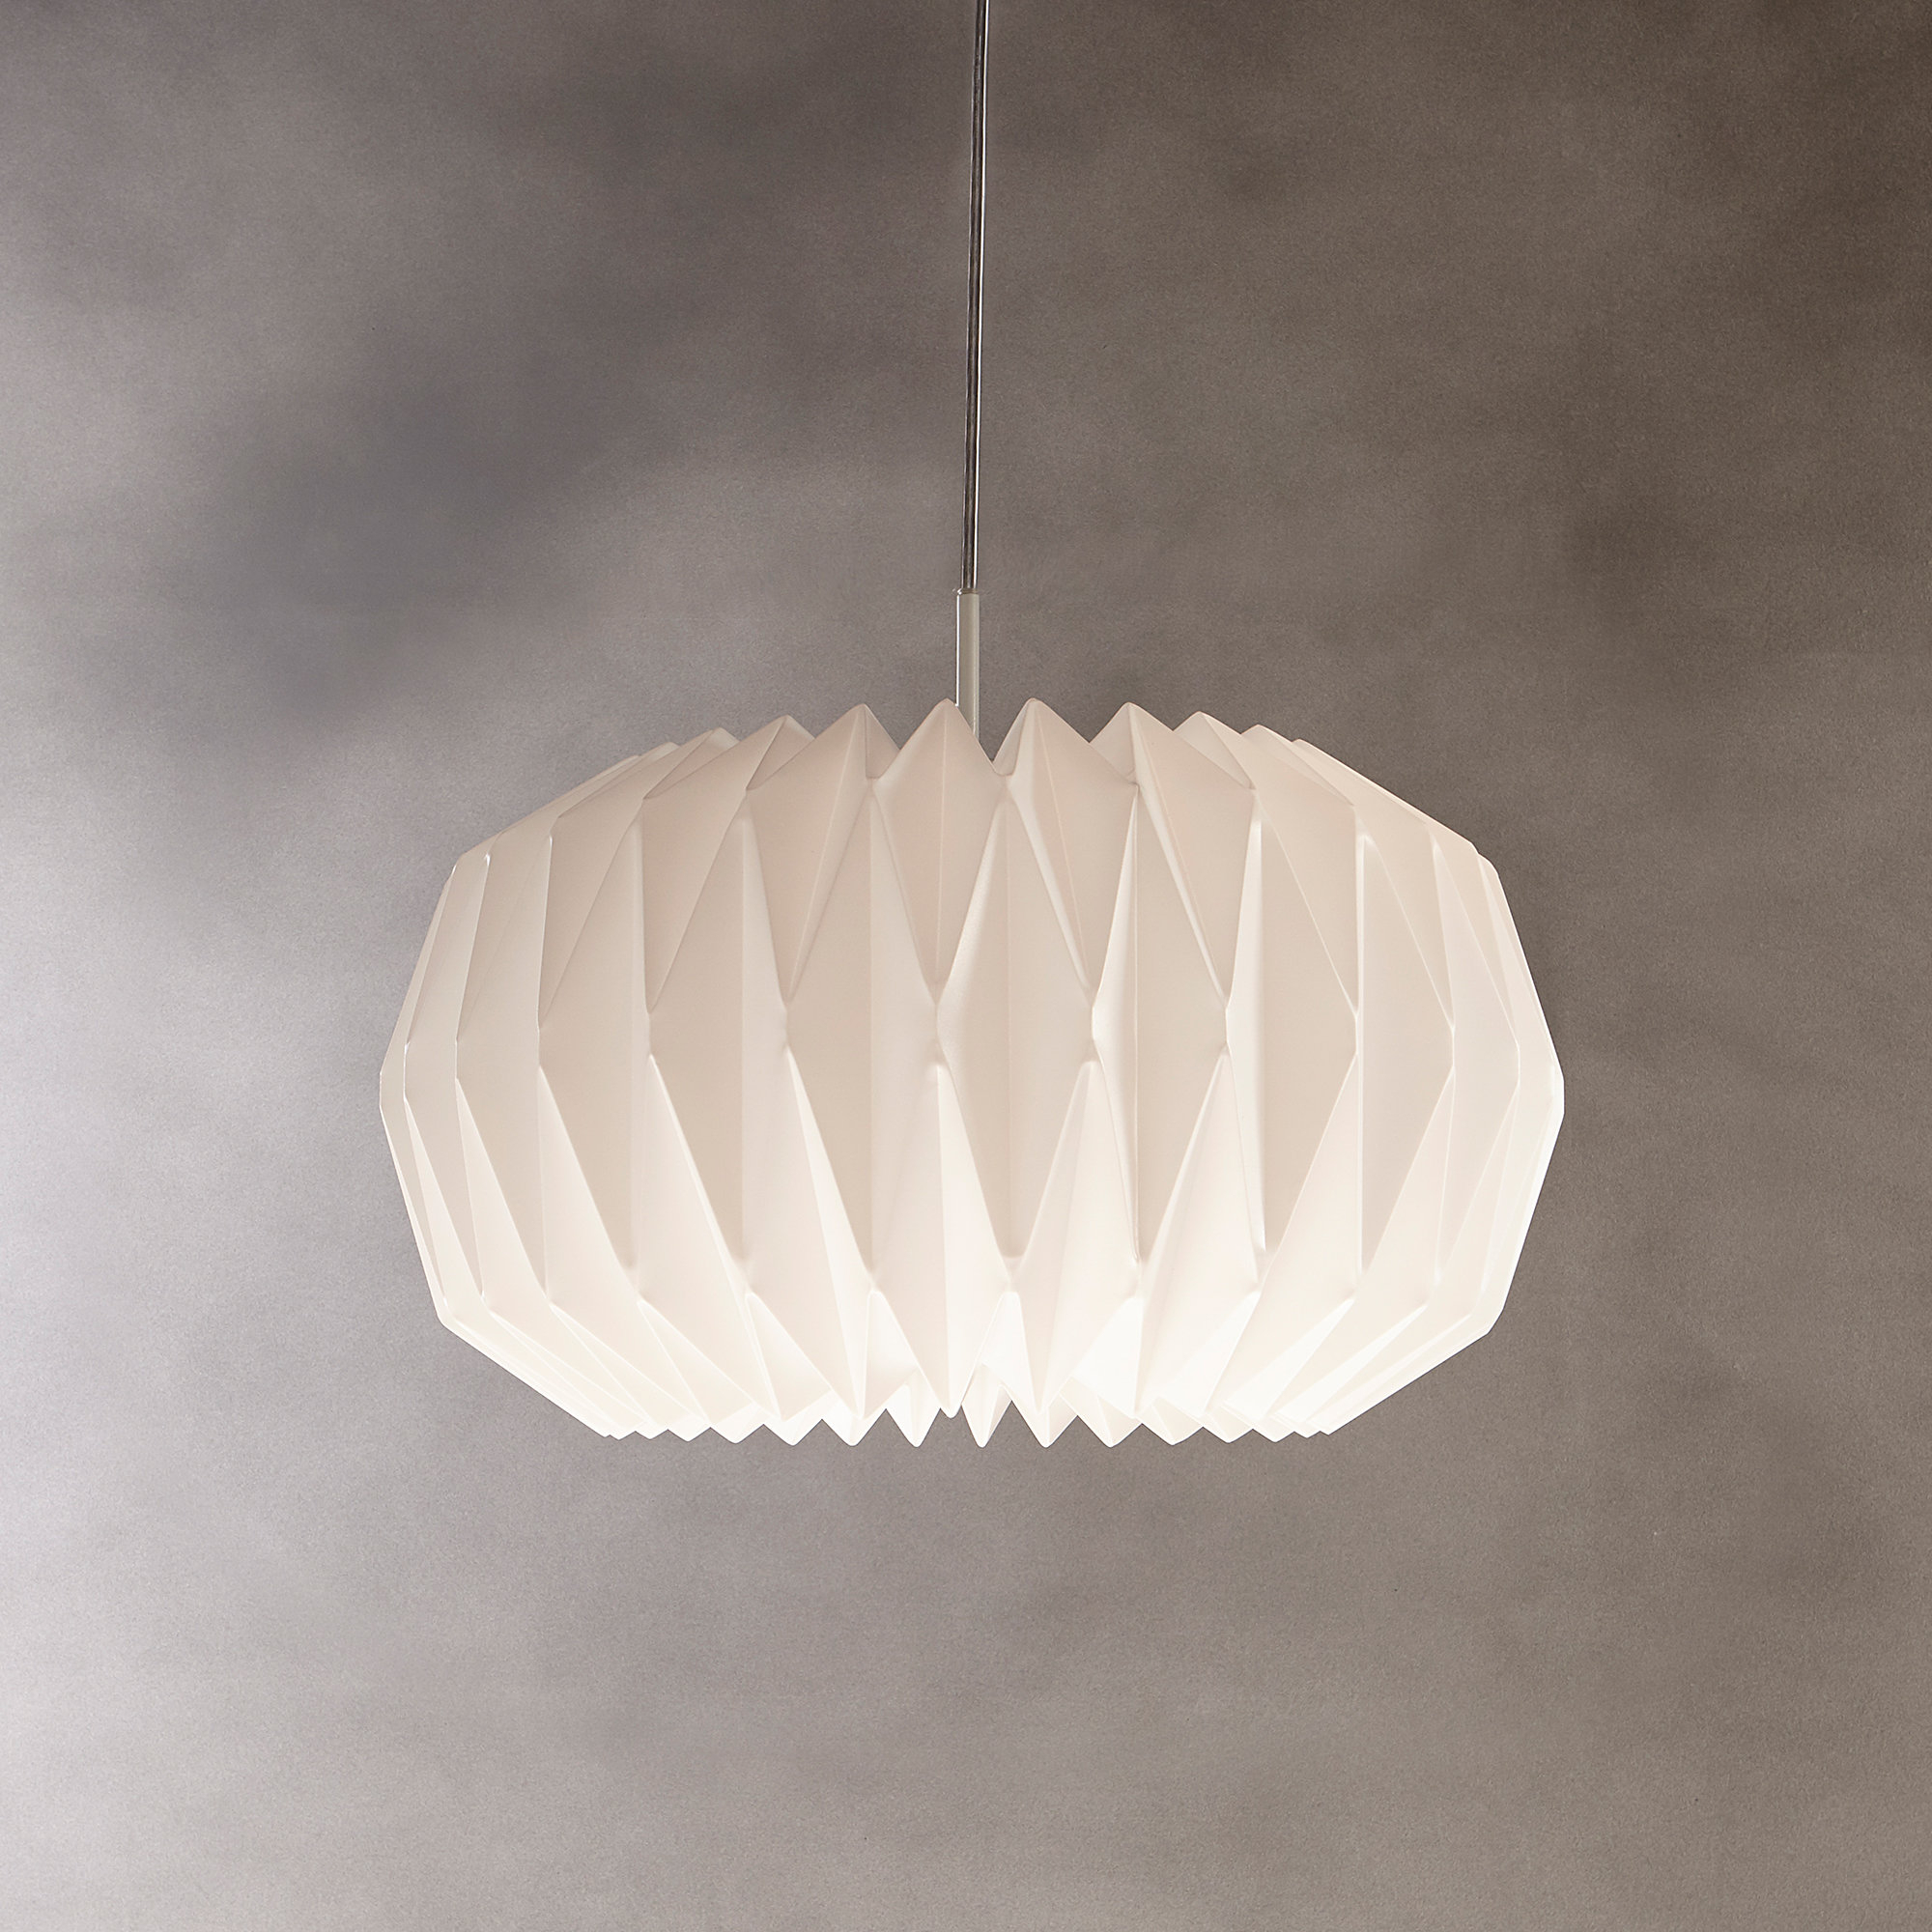 Gary Drum Pendant Throughout Latest Melora 1 Light Single Geometric Pendants (View 14 of 20)